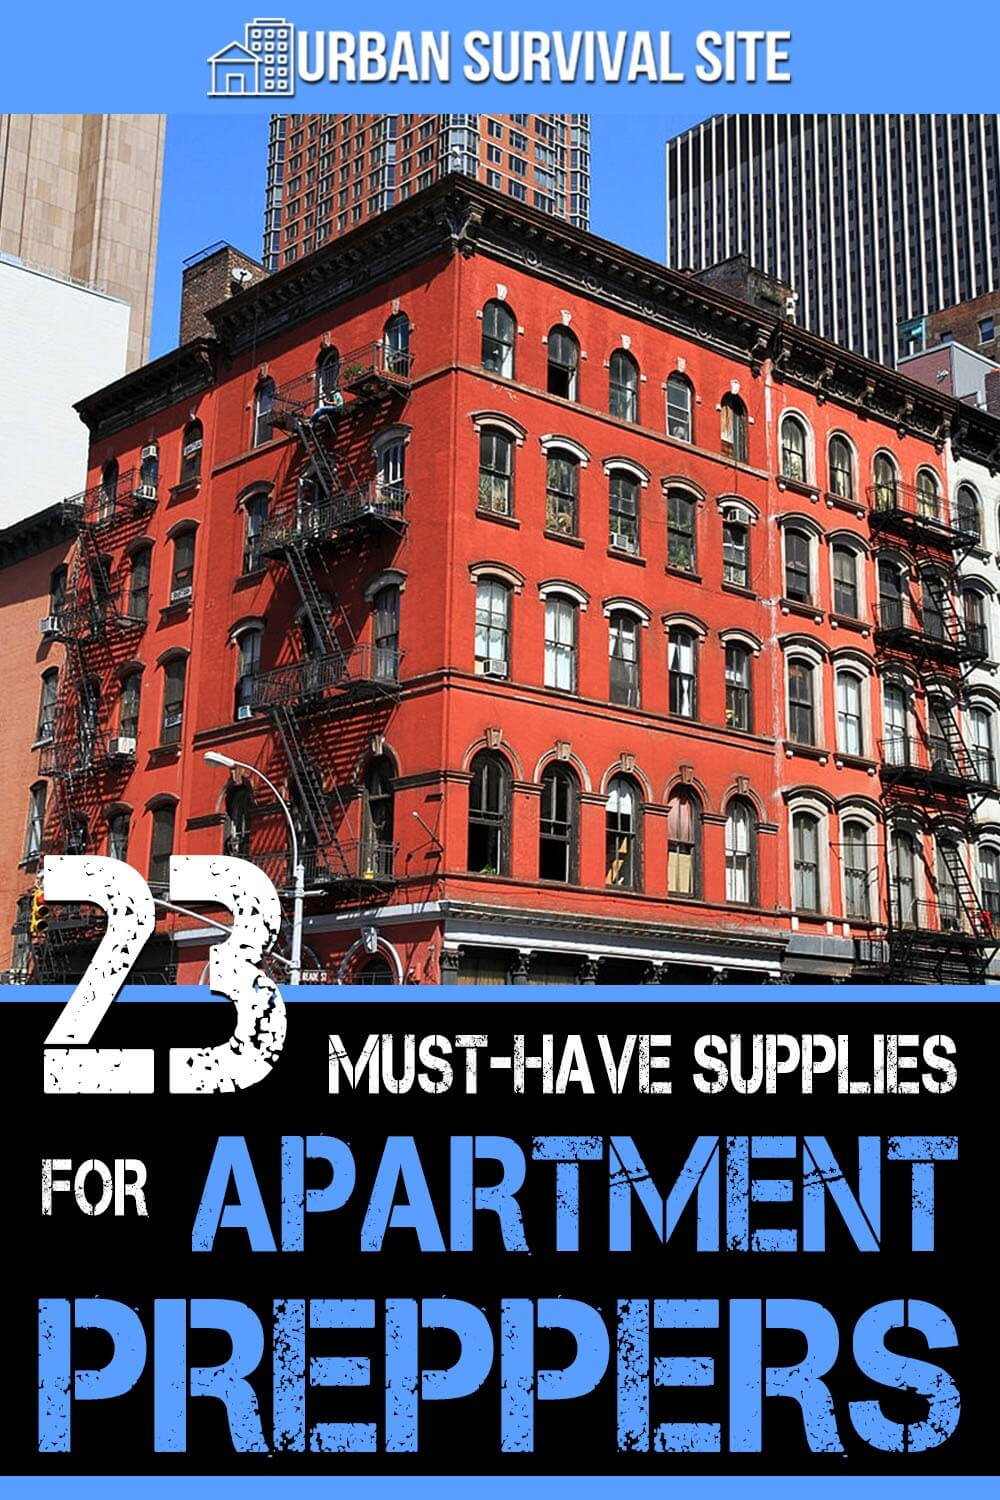 23 Must-Have Supplies for Apartment Preppers